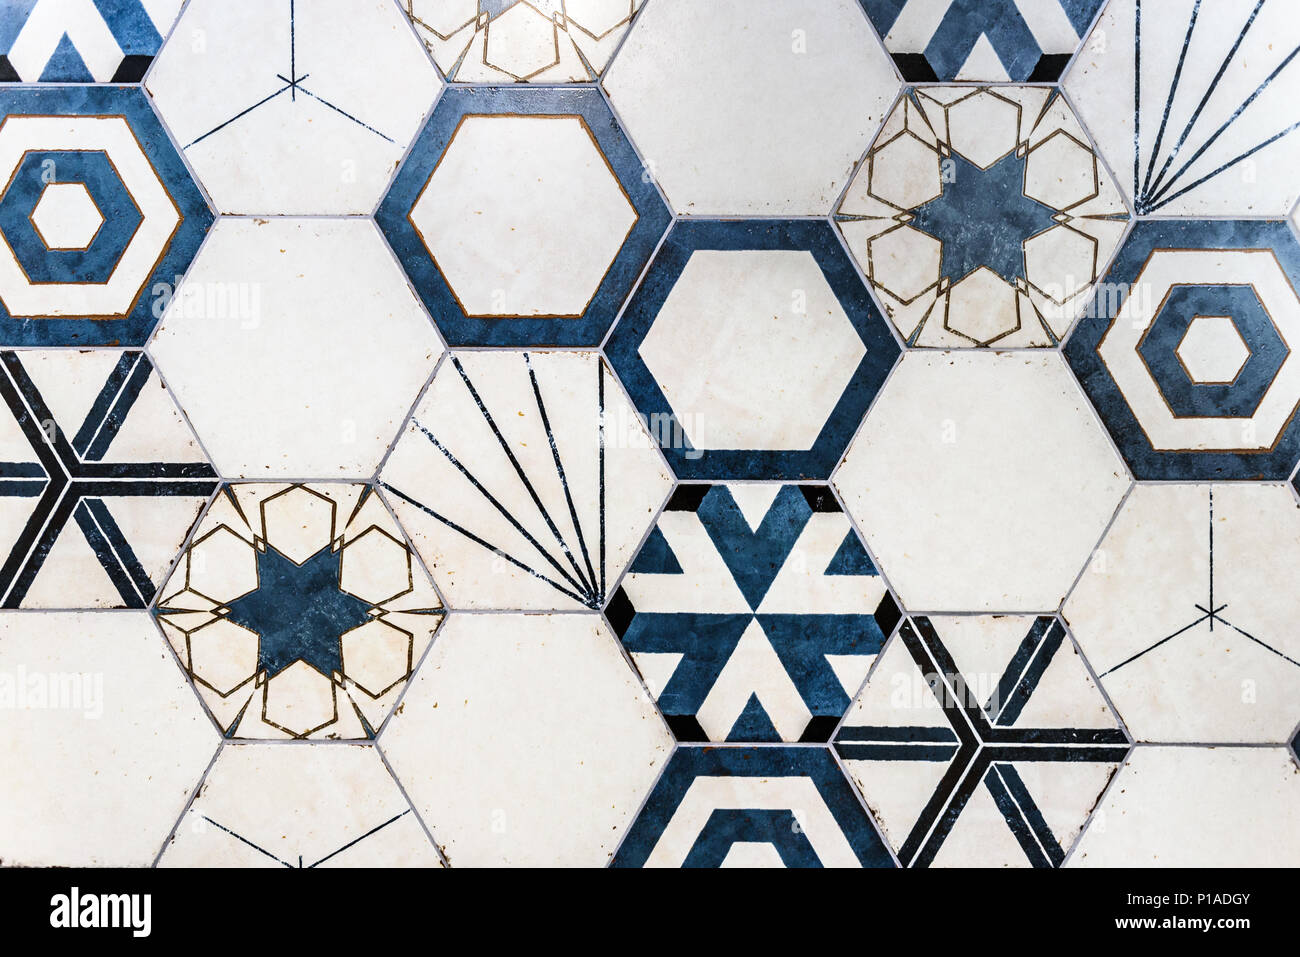 Hexagonal Colorful Modern Bathroom, Toilette Or Kitchen Ceramic Tiles Wall.  Artistic Blue And White Ornamental Hexagonal Ceramic Tiles Texture Pattern